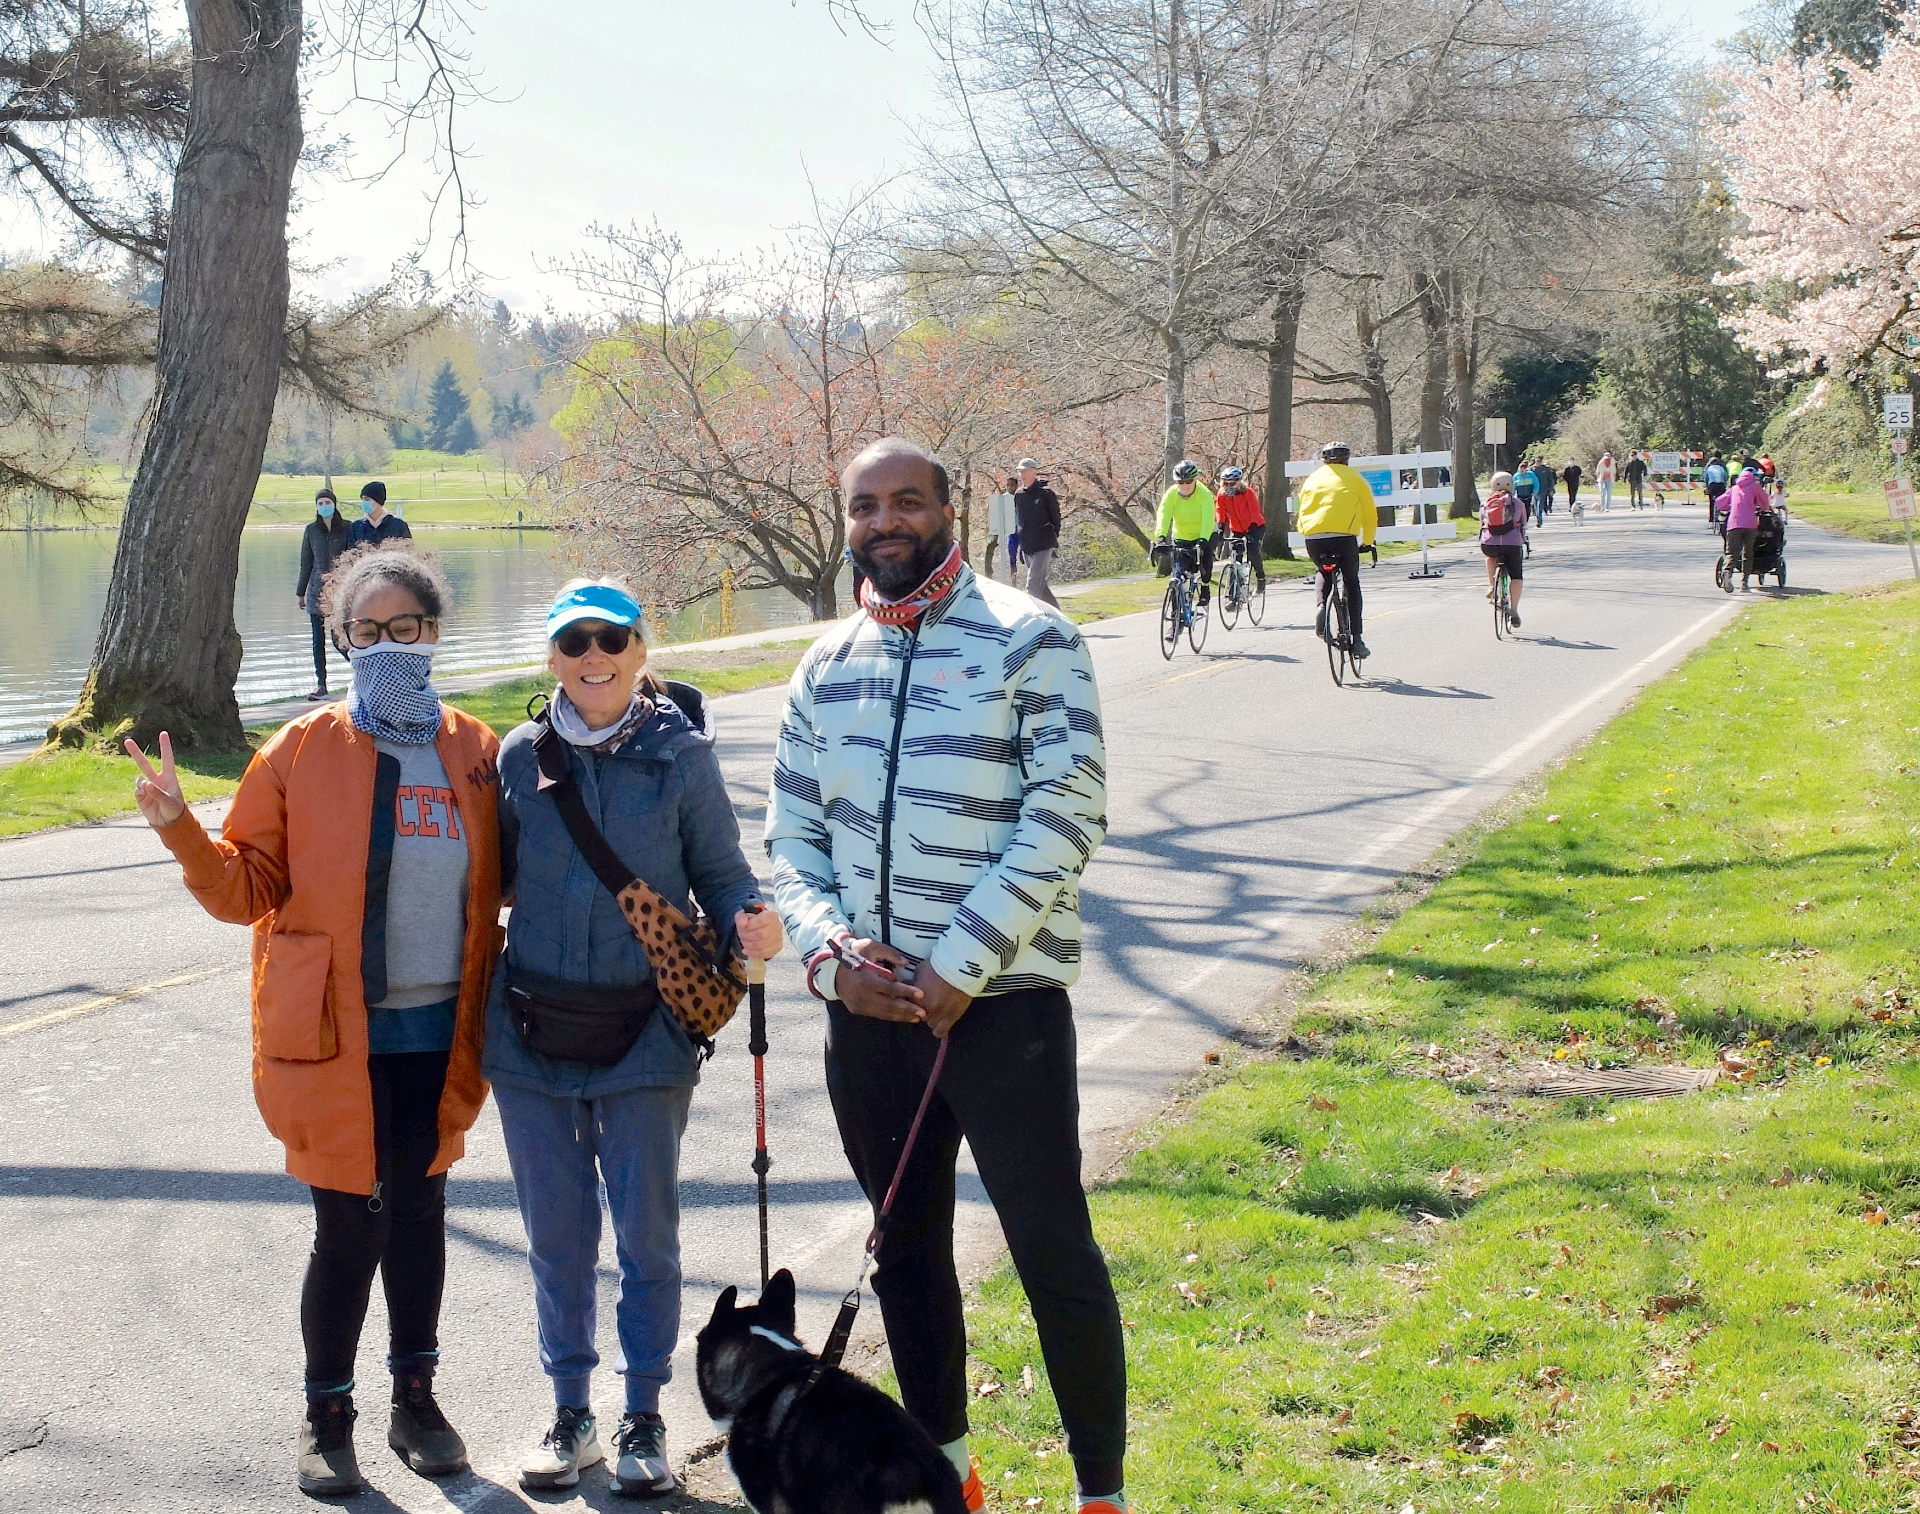 A mixed race family smiles for the camera with their dog in front of a boulevard full of people walking and biking next to a lake.